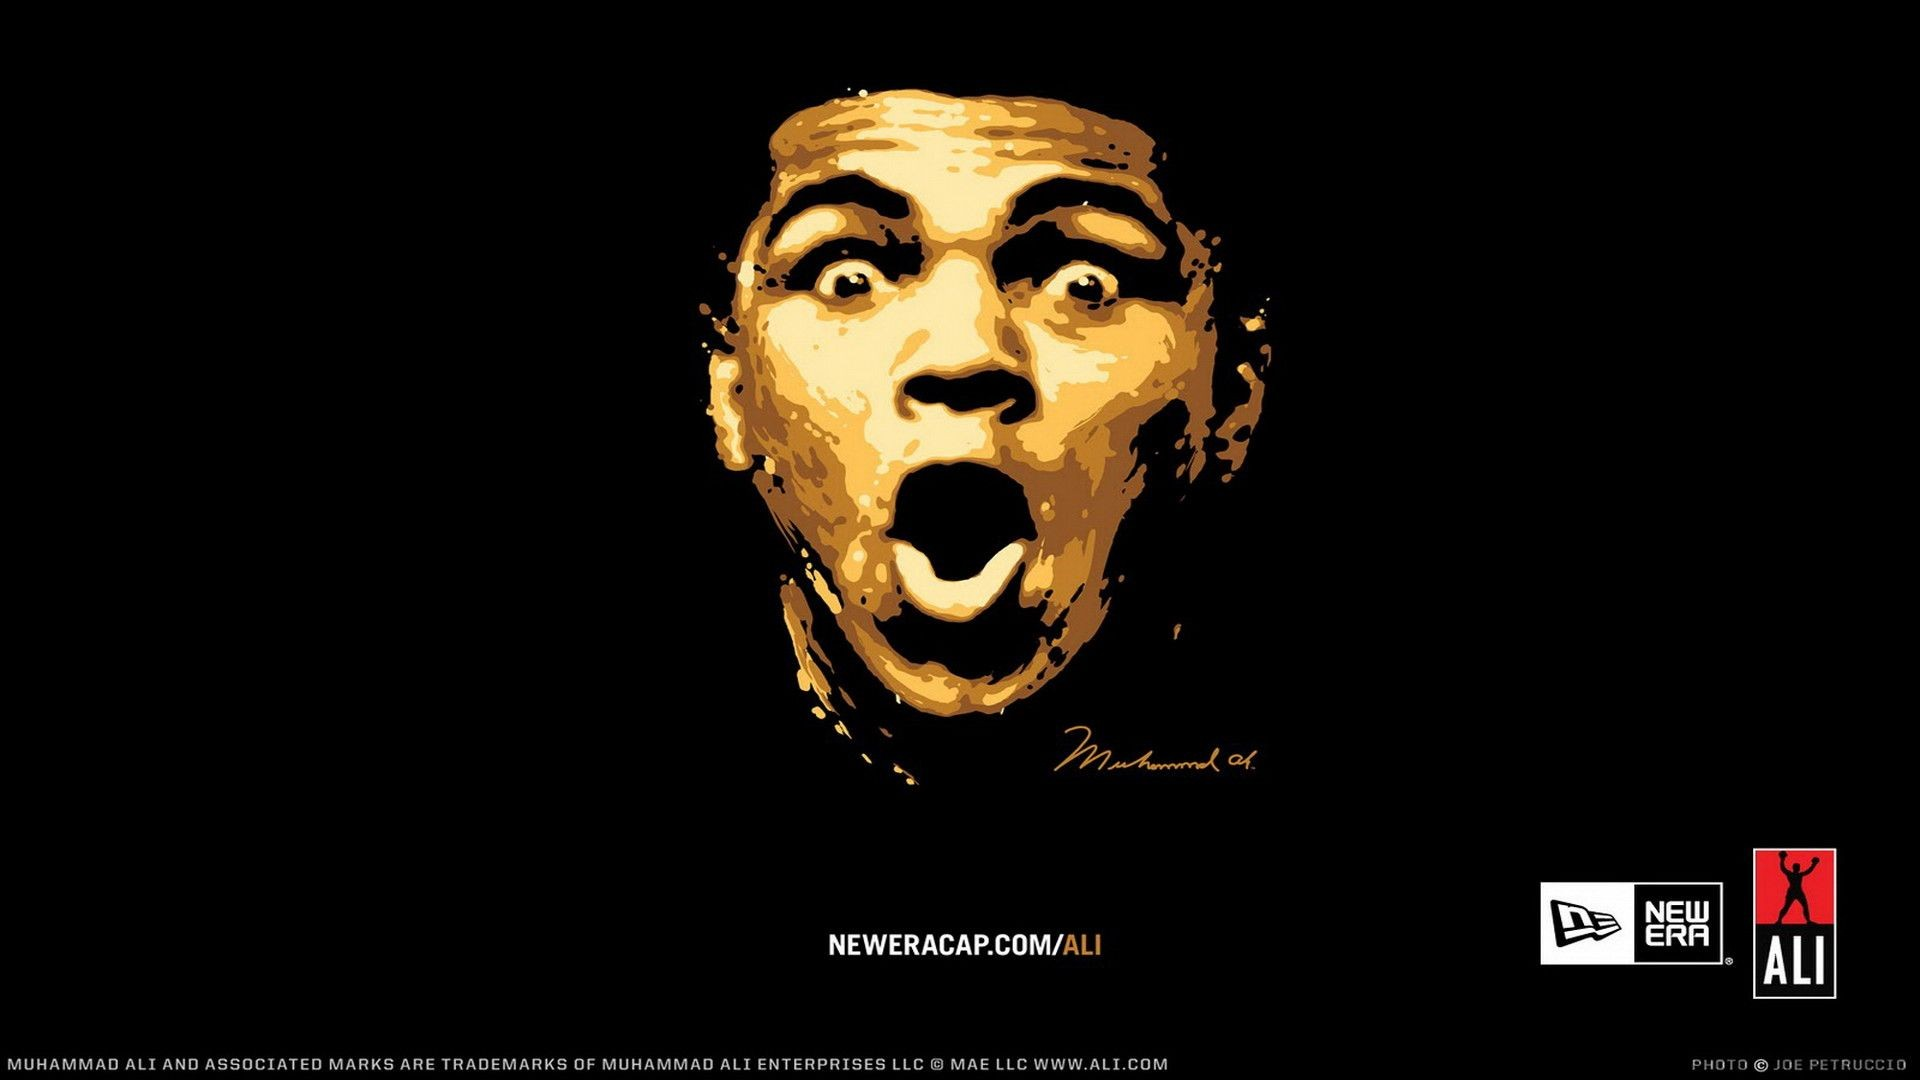 Muhammad Ali Wallpaper ① Download Free Awesome High Resolution